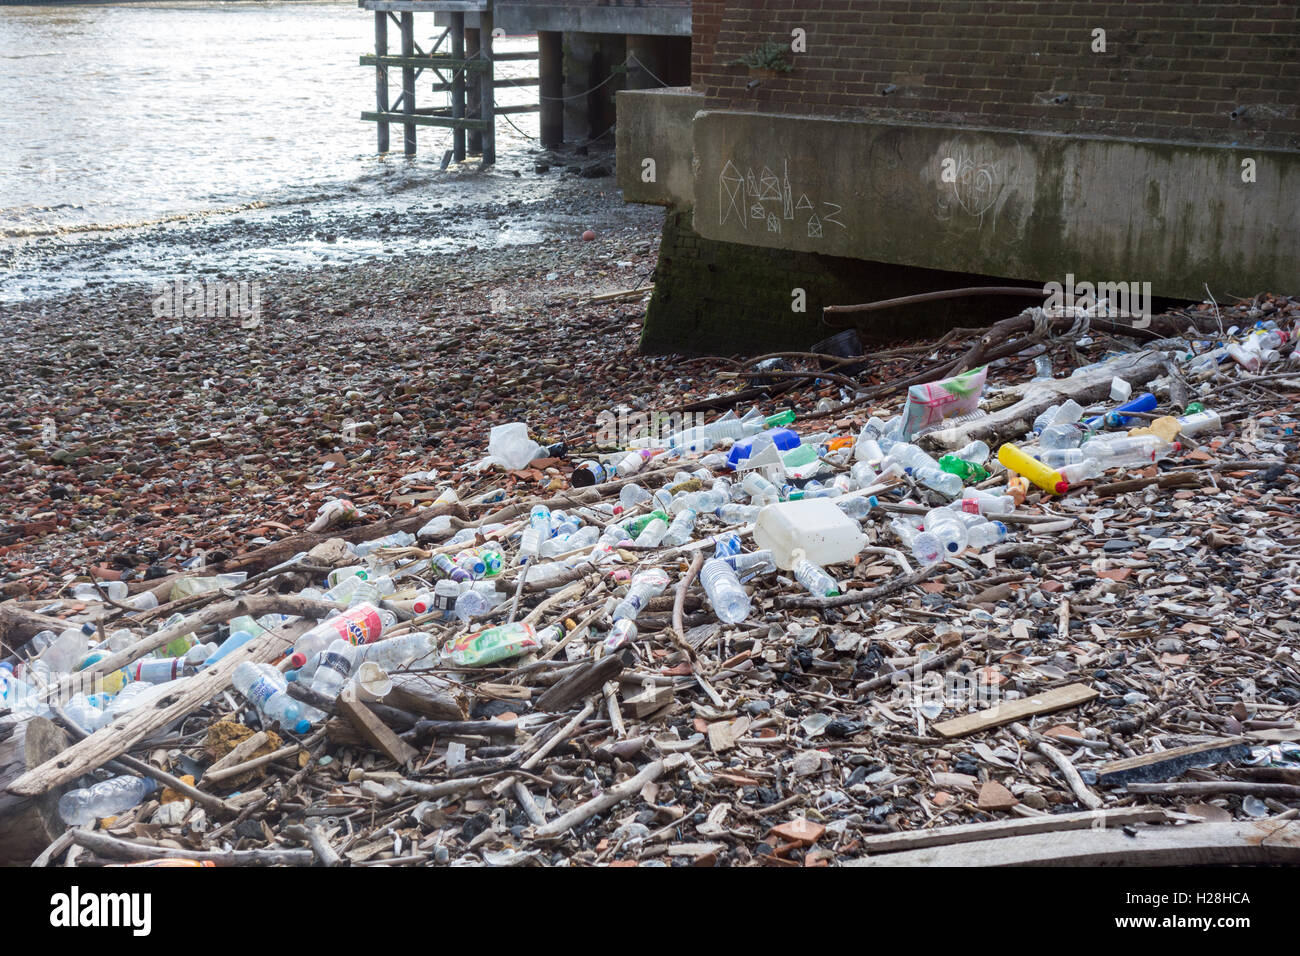 Plastic bottles and waste trash on the banks on the River Thames, London, UK - Stock Image